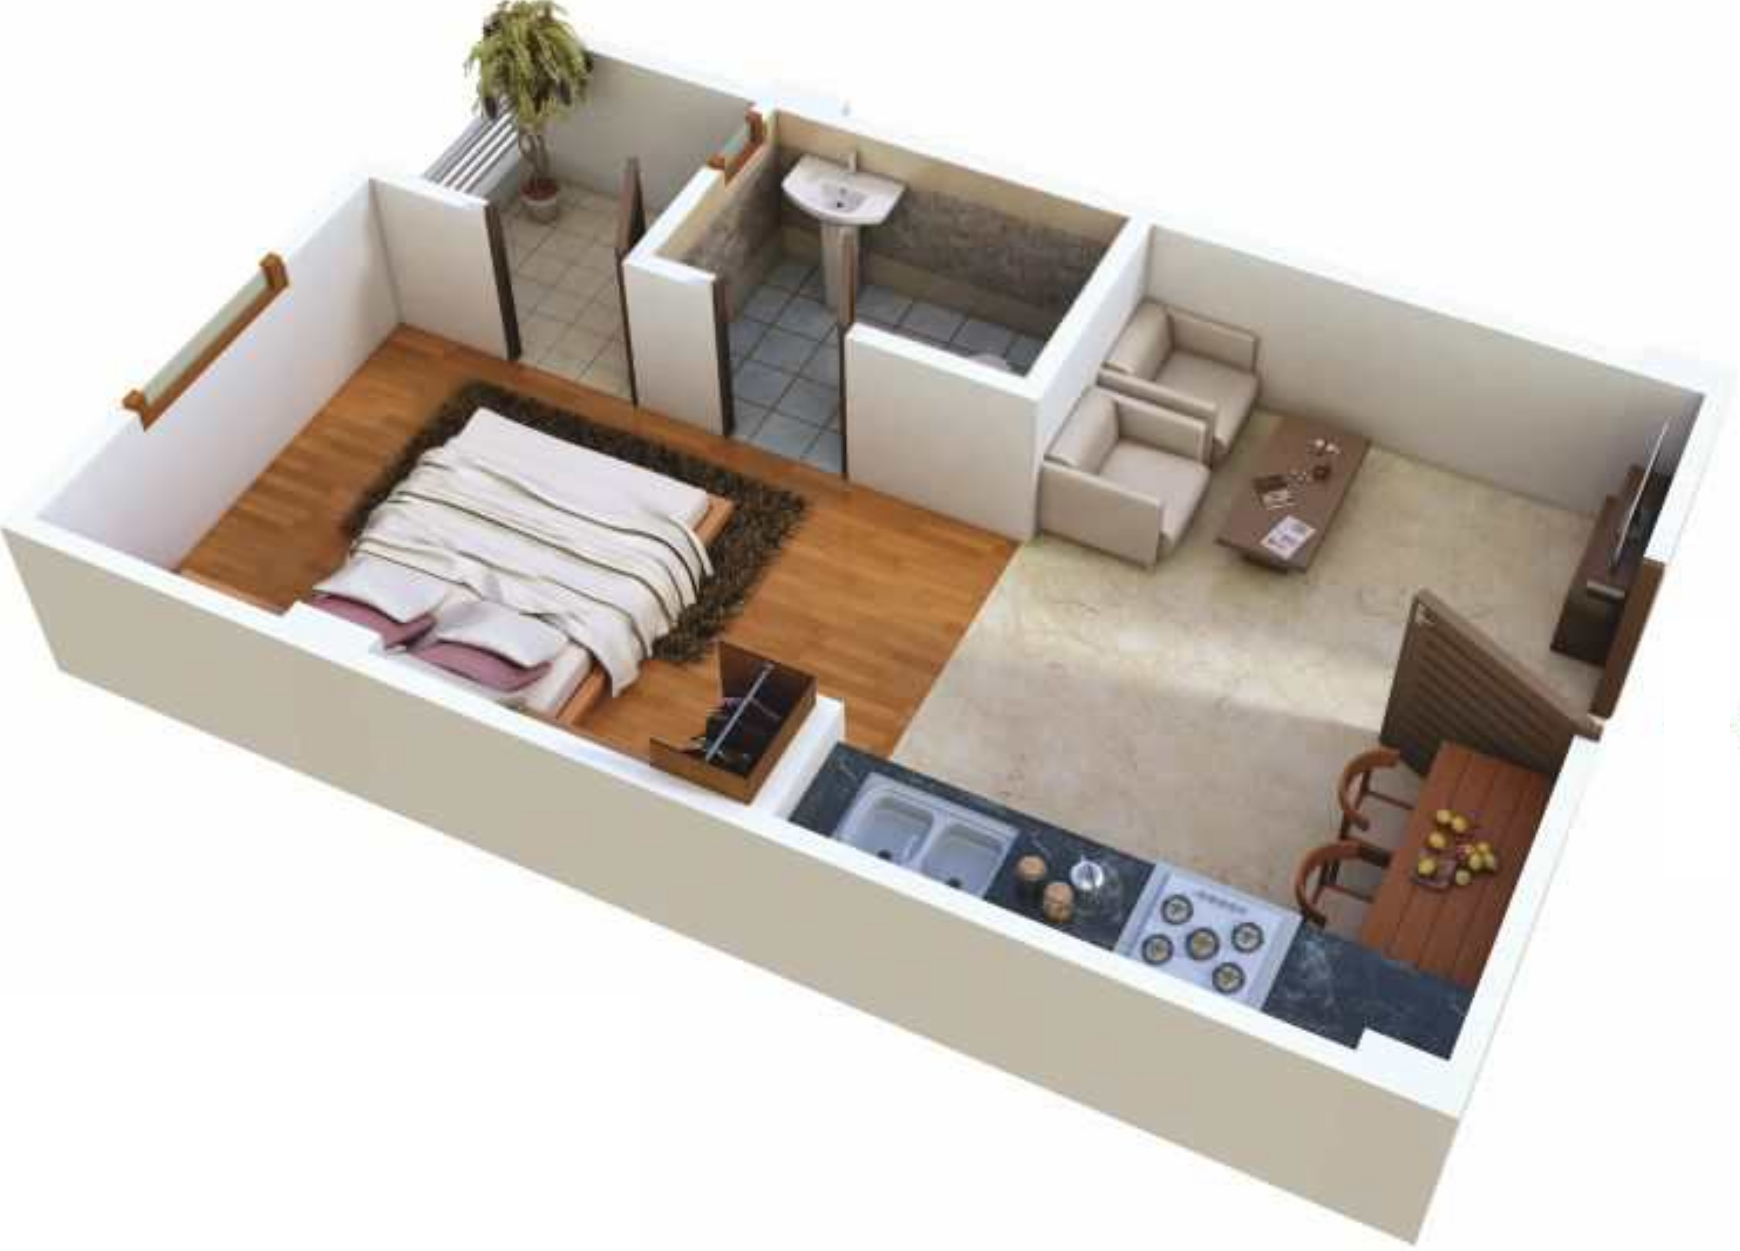 450 Sq Ft 1 Bhk 1t Apartment For Sale In Samanvay Group Atmosphere Mahindra Sez Jaipur